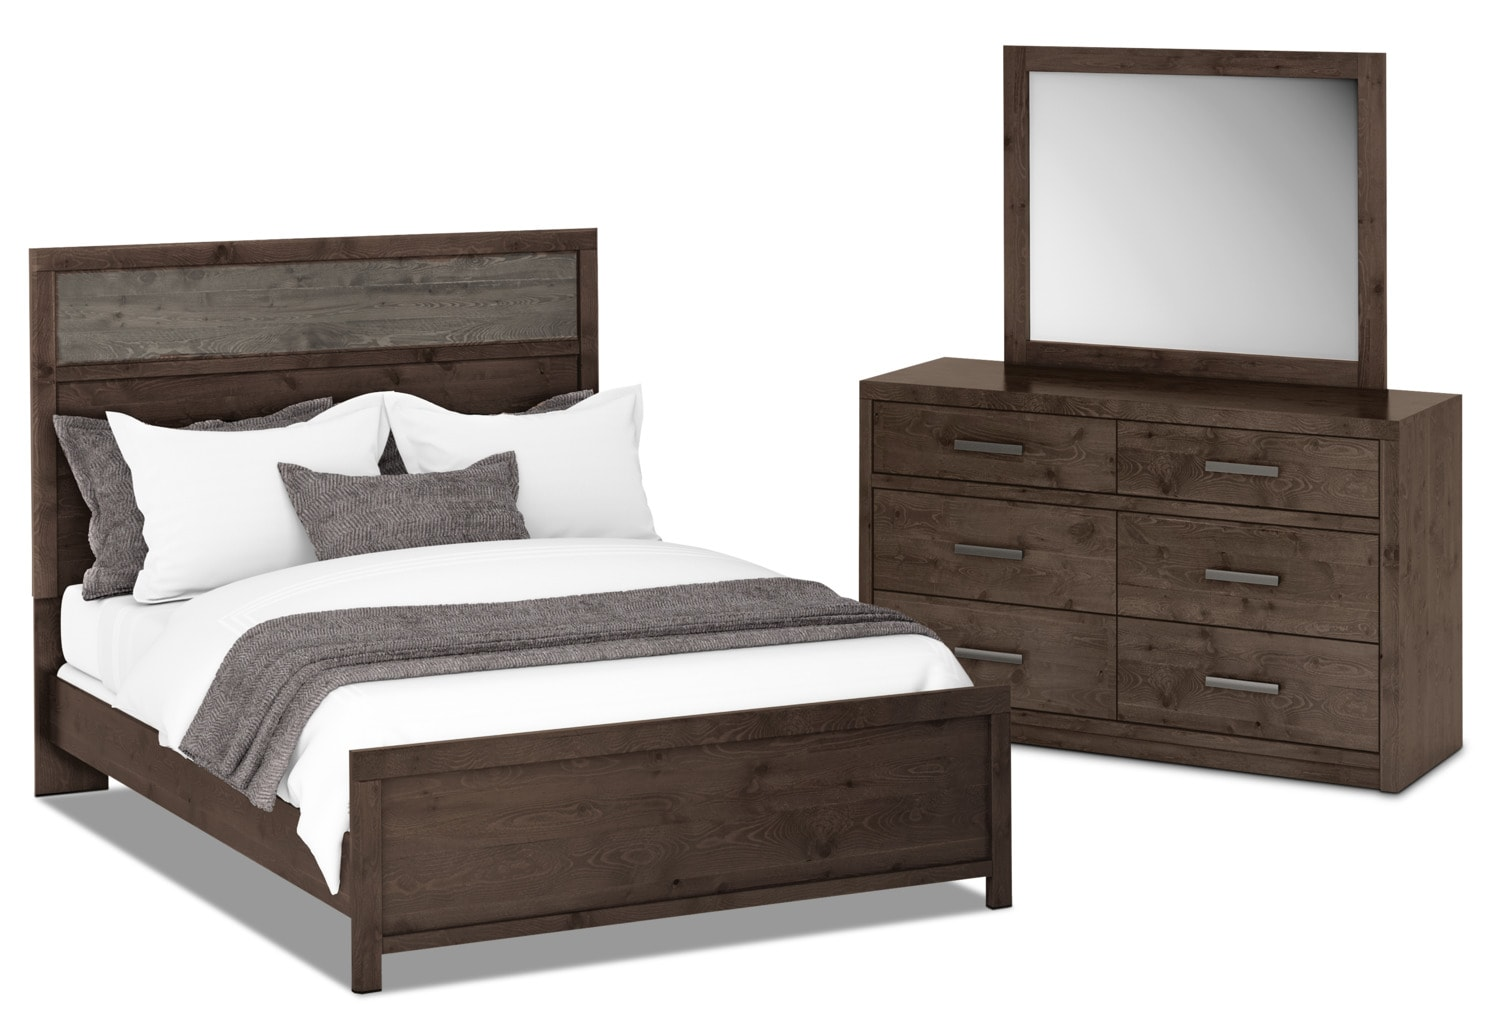 Bedroom Furniture - Onyx 5-Piece Queen Bedroom Package